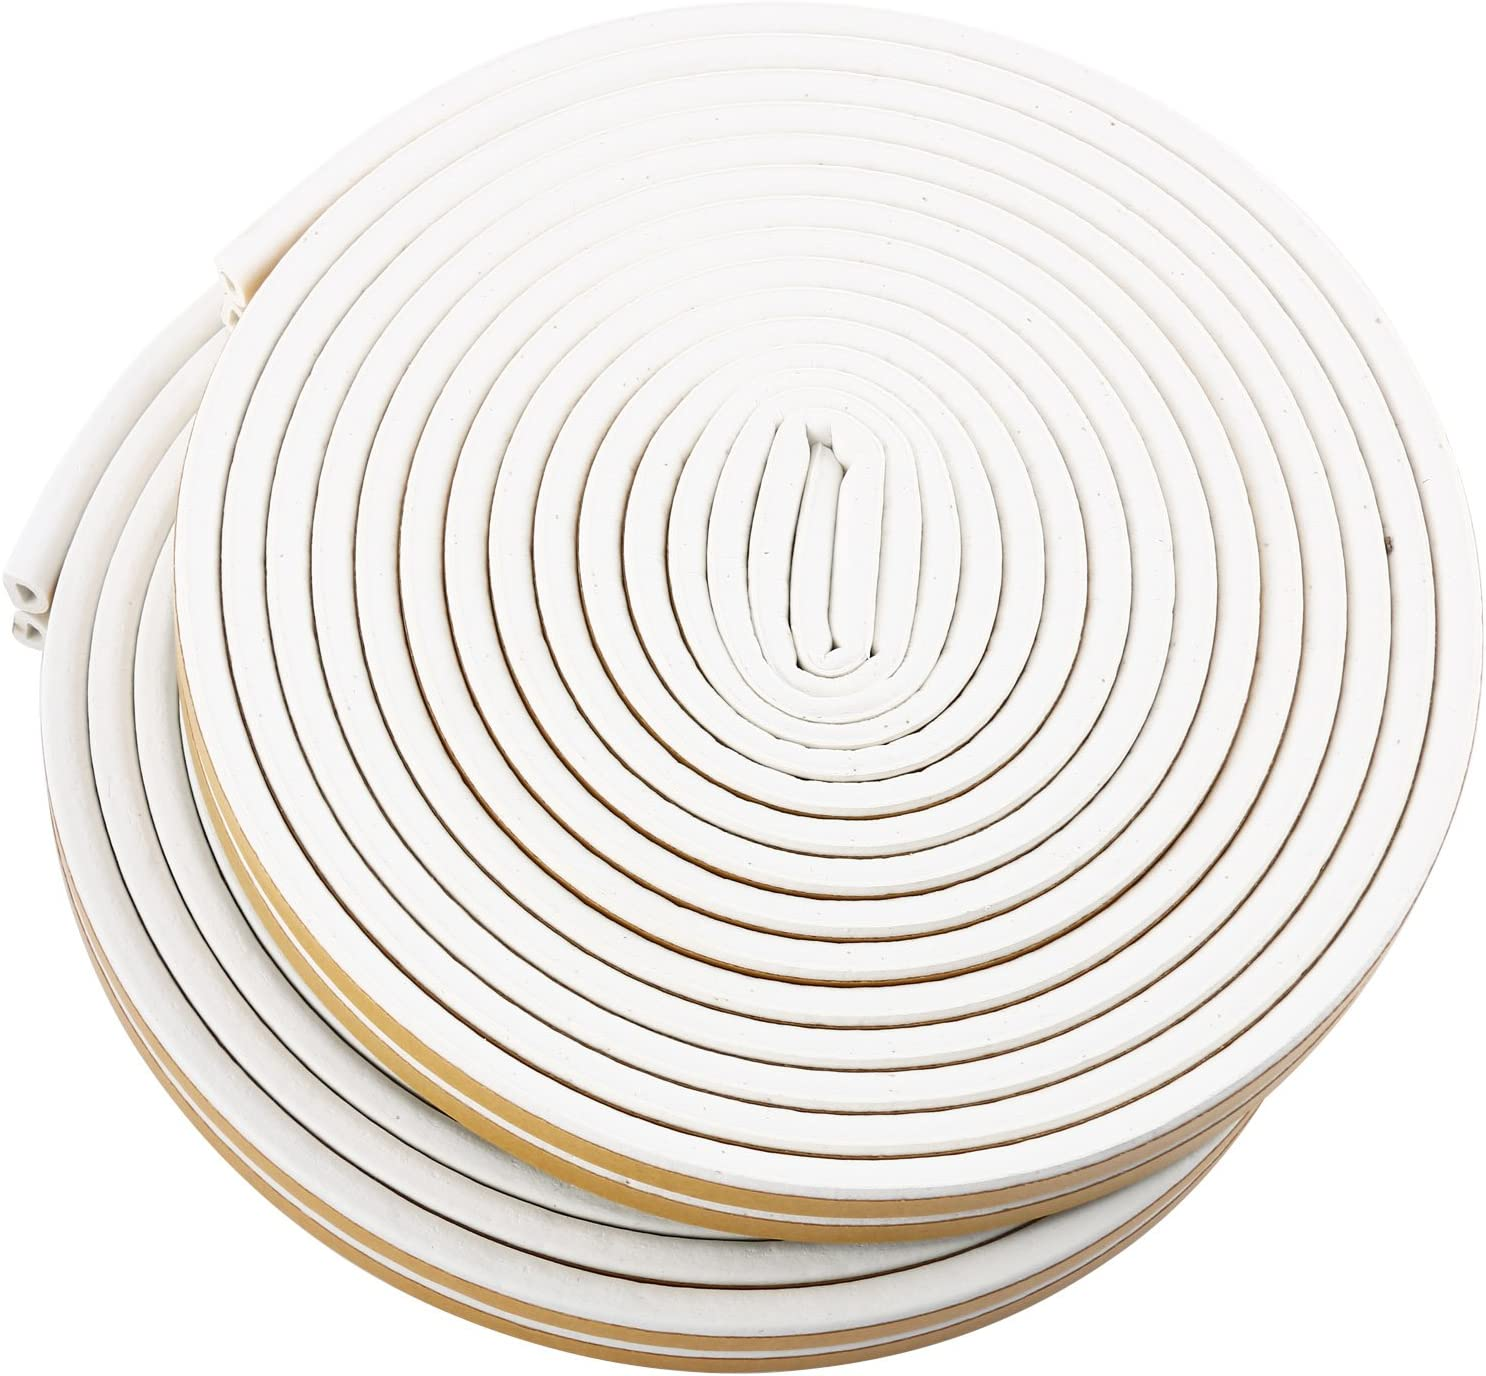 20M Long Weather Stripping Doors and Windows Soundproofing Anti-Collision Self-Adhesive Weatherstrip Rubber Door Seal Strip Homend Soundproof Weather Stripping Door Kit, 66FT Pack of 2, White